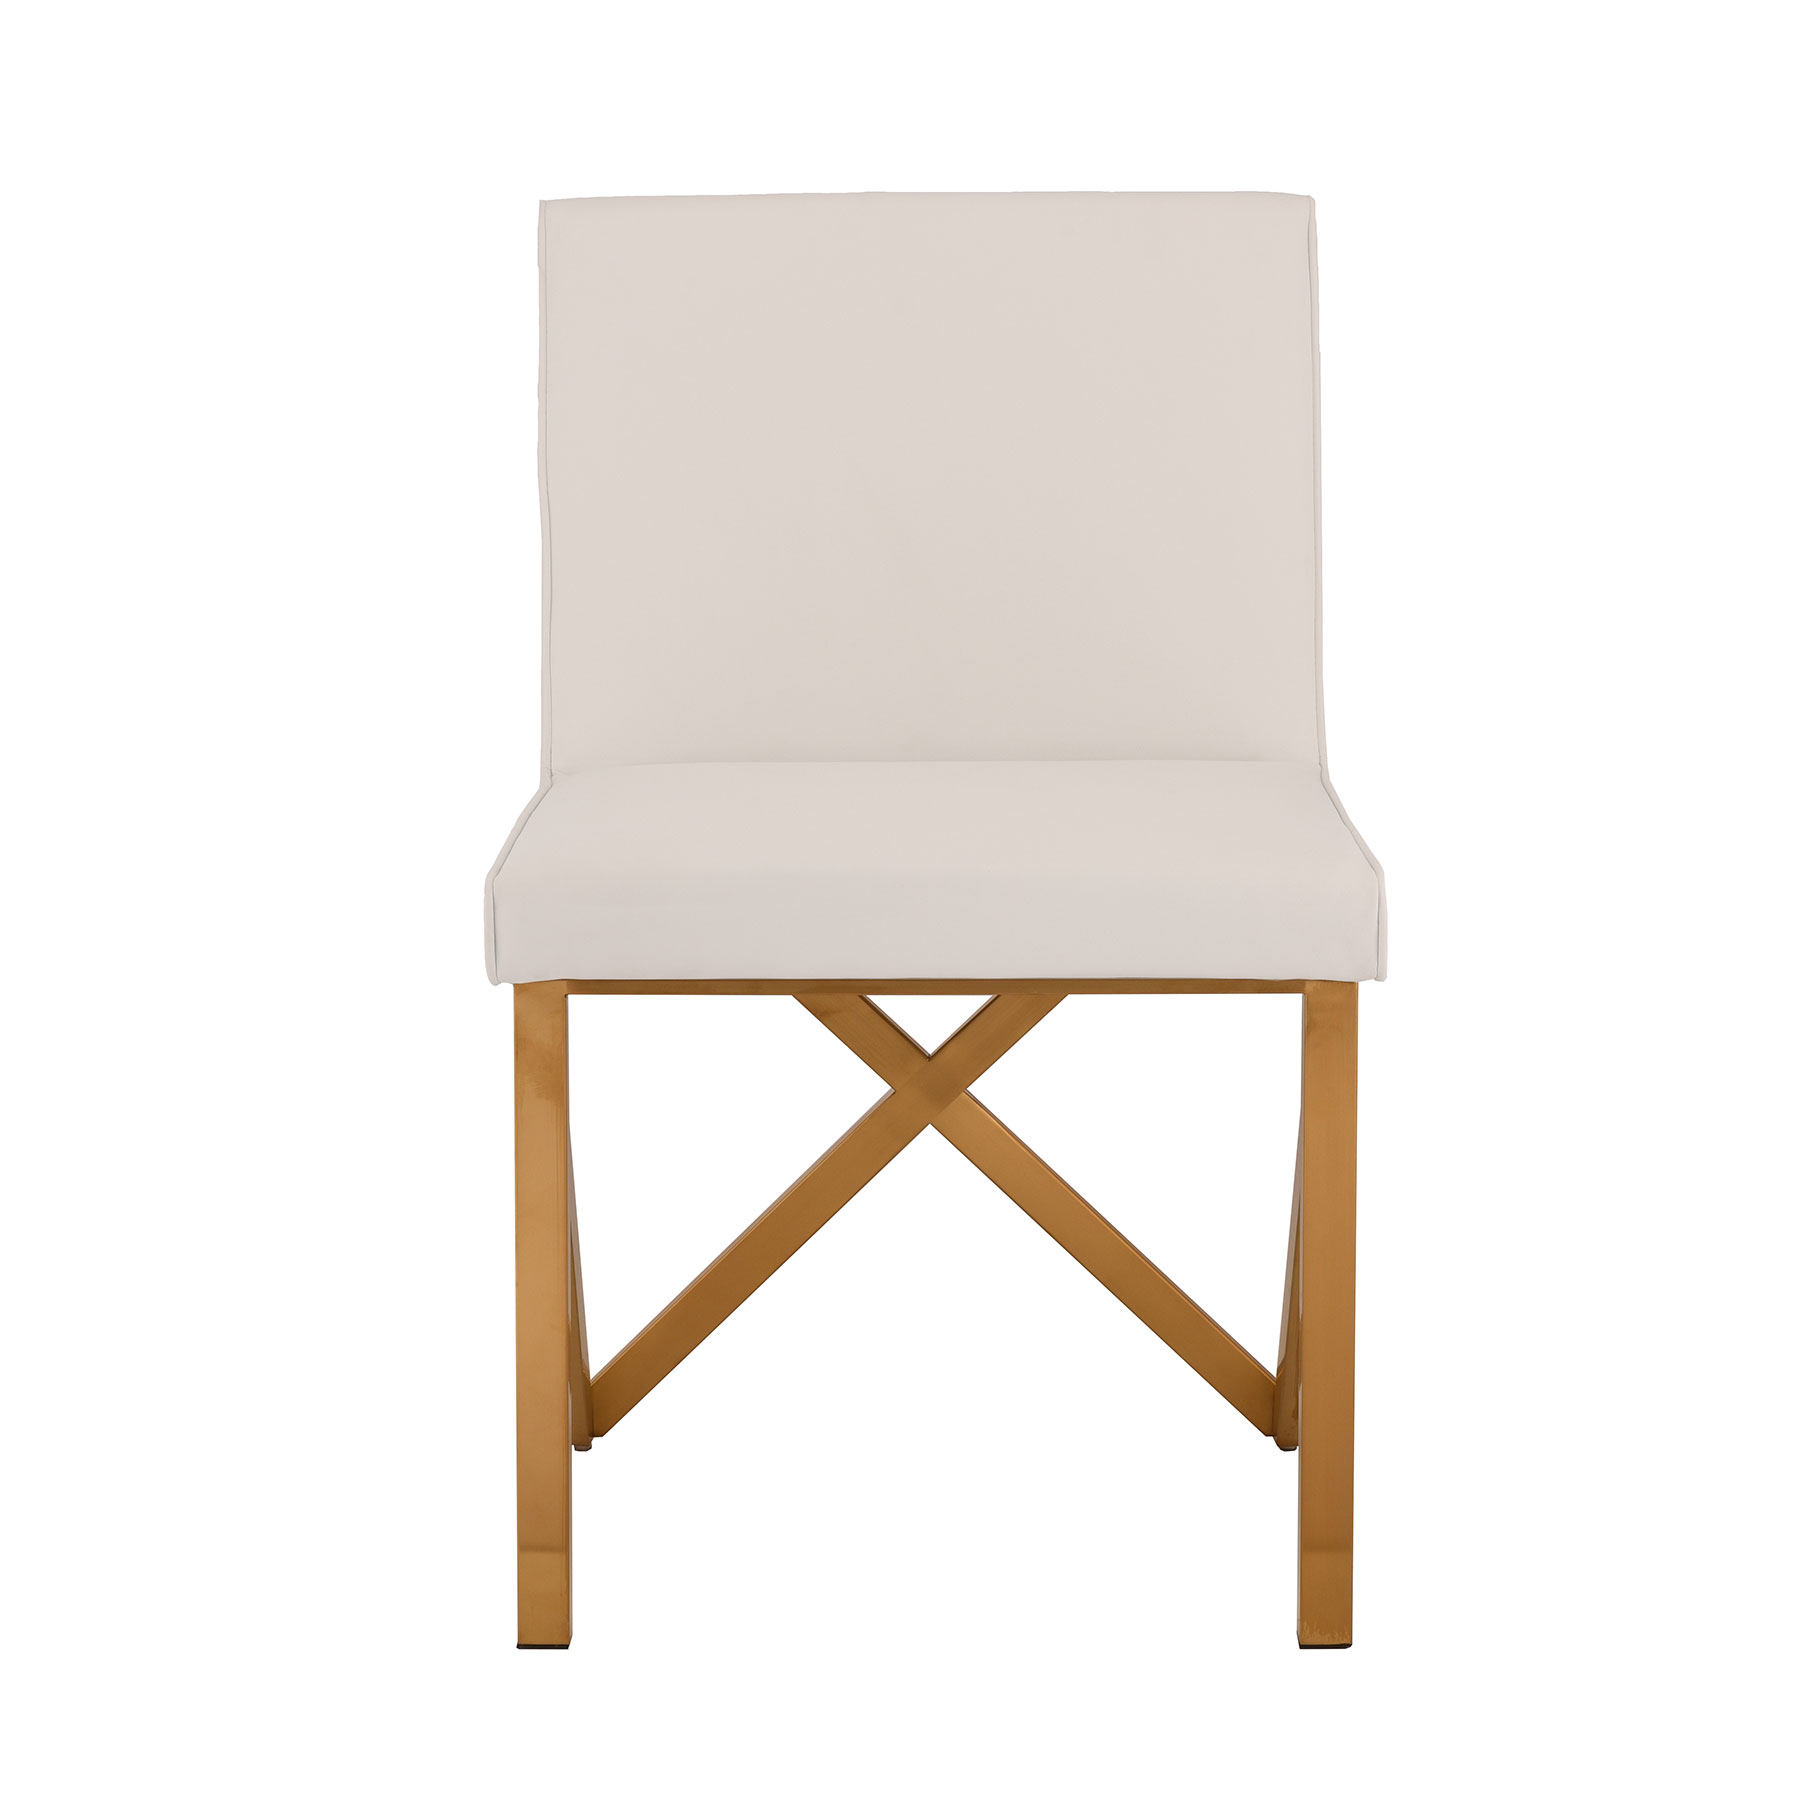 Talbot Dining Chair   White / Gold   Contemporary | Nuevo HGTB500